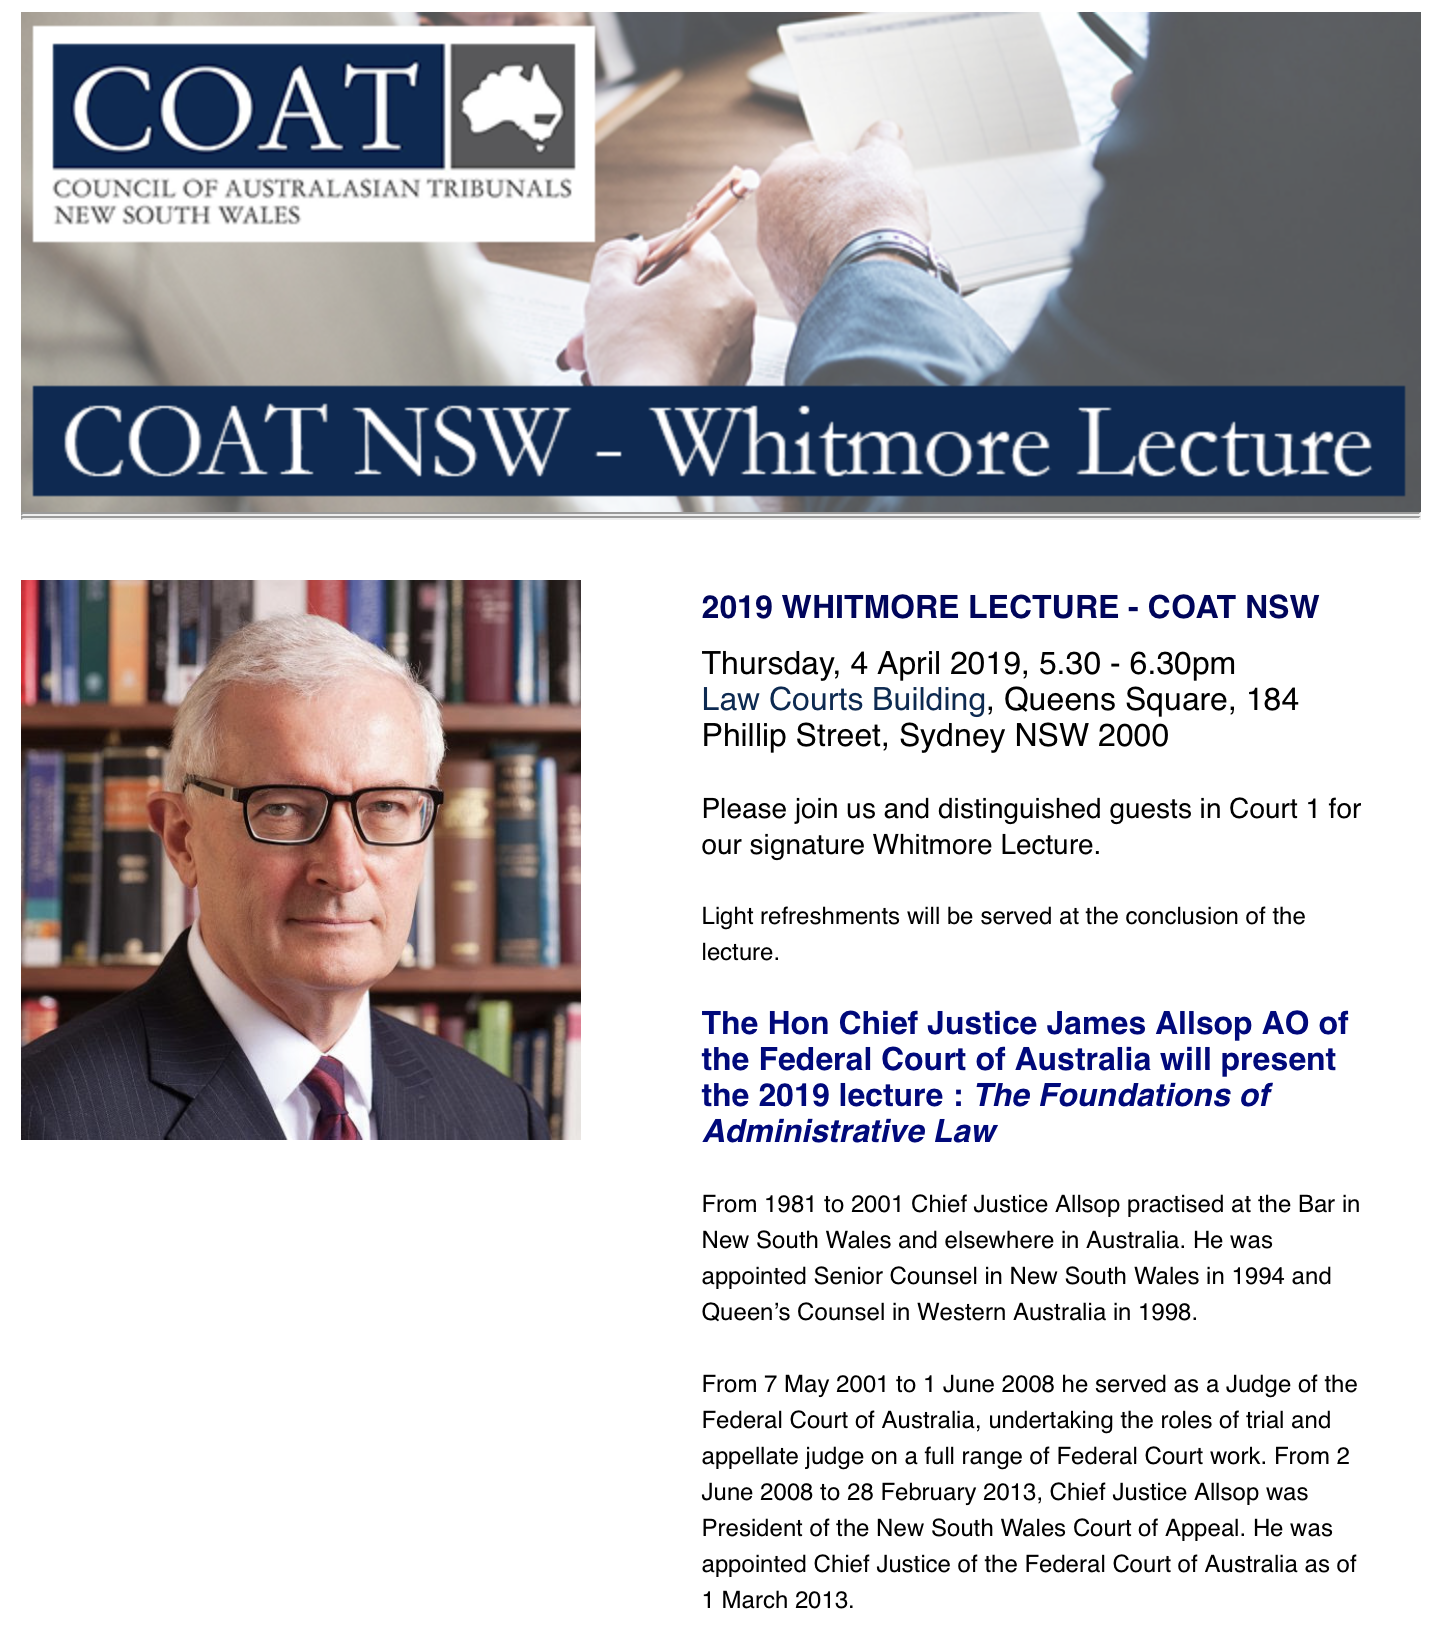 COAT NSW 2019 Whitmore Lecture